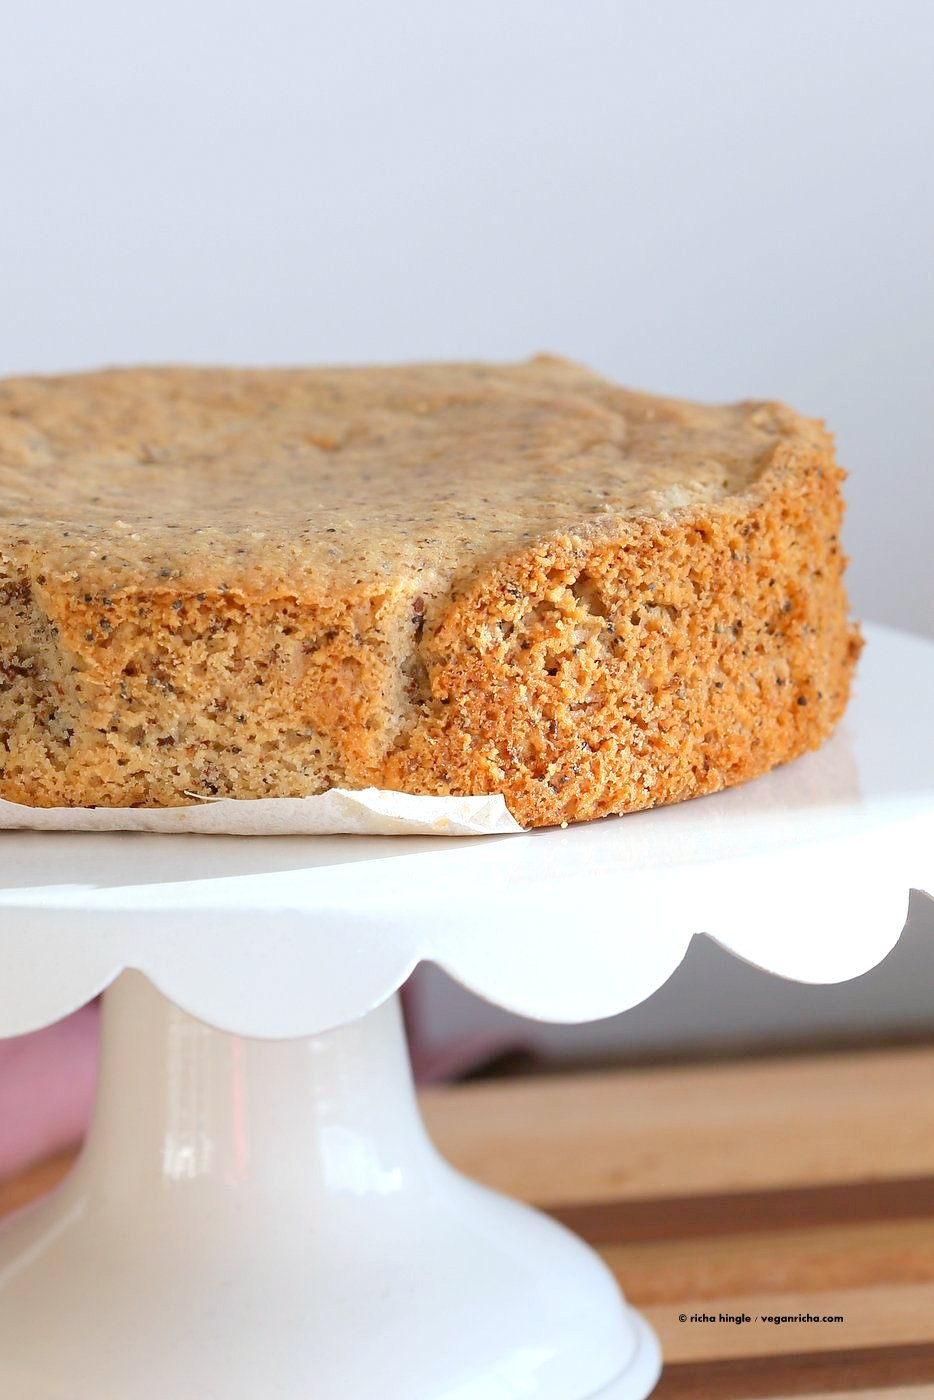 Vegan Almond Poppy Seed Cake. Gluten free Cake. Spongy Moist Cake with no Gum. Use as Sponge Cake without poppy seeds. Vegan Gluten-free Oil-free Recipe. | VeganRicha.com